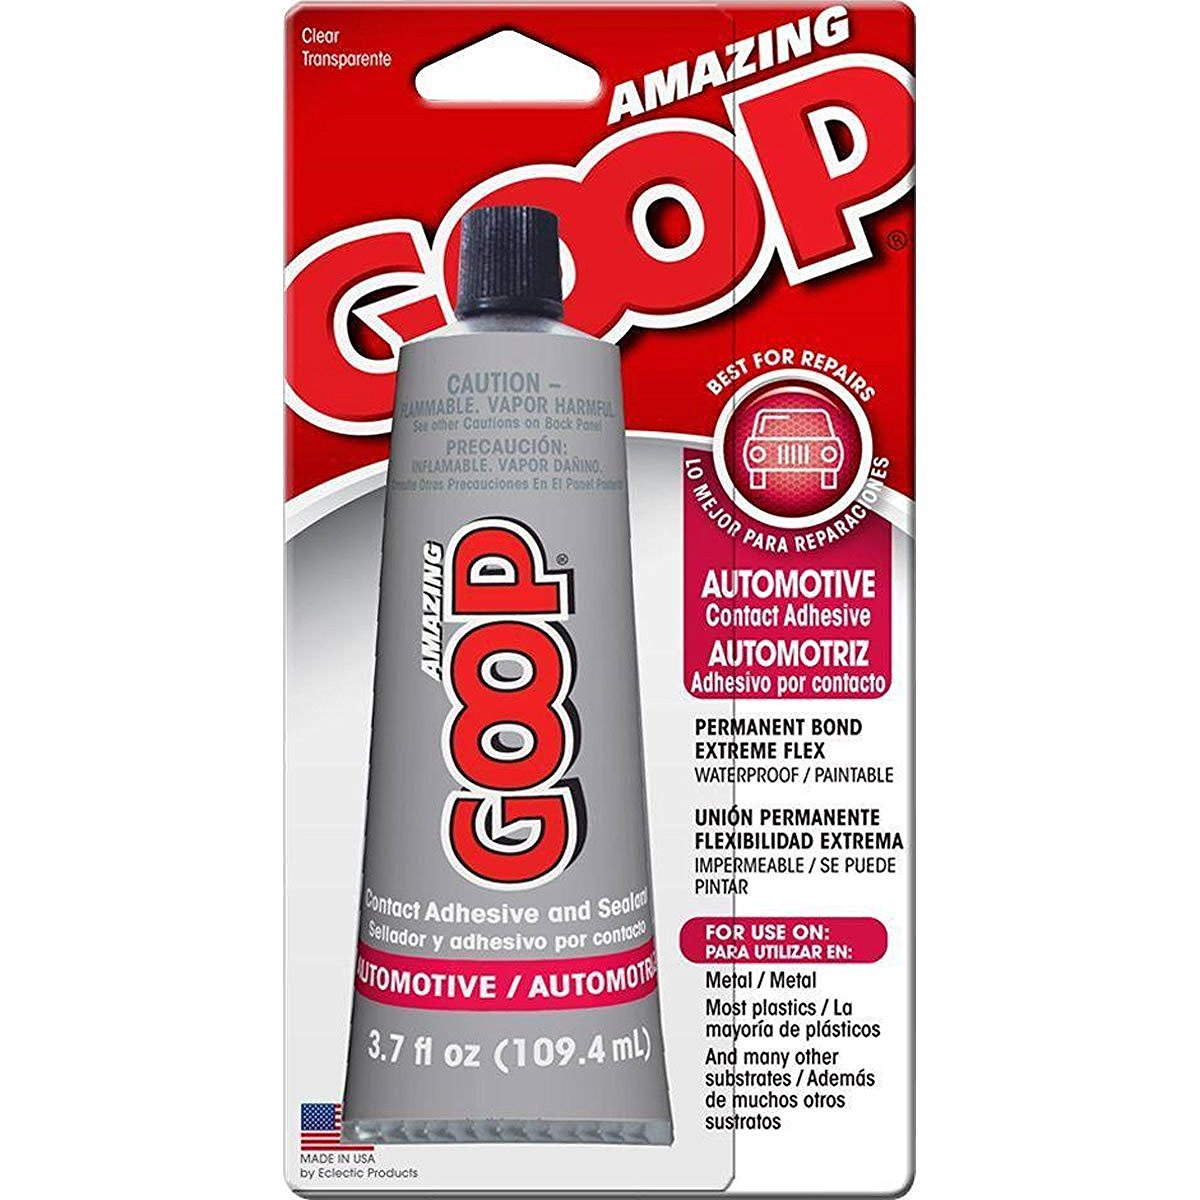 Image Result For Goop Automotive Adhesive Review